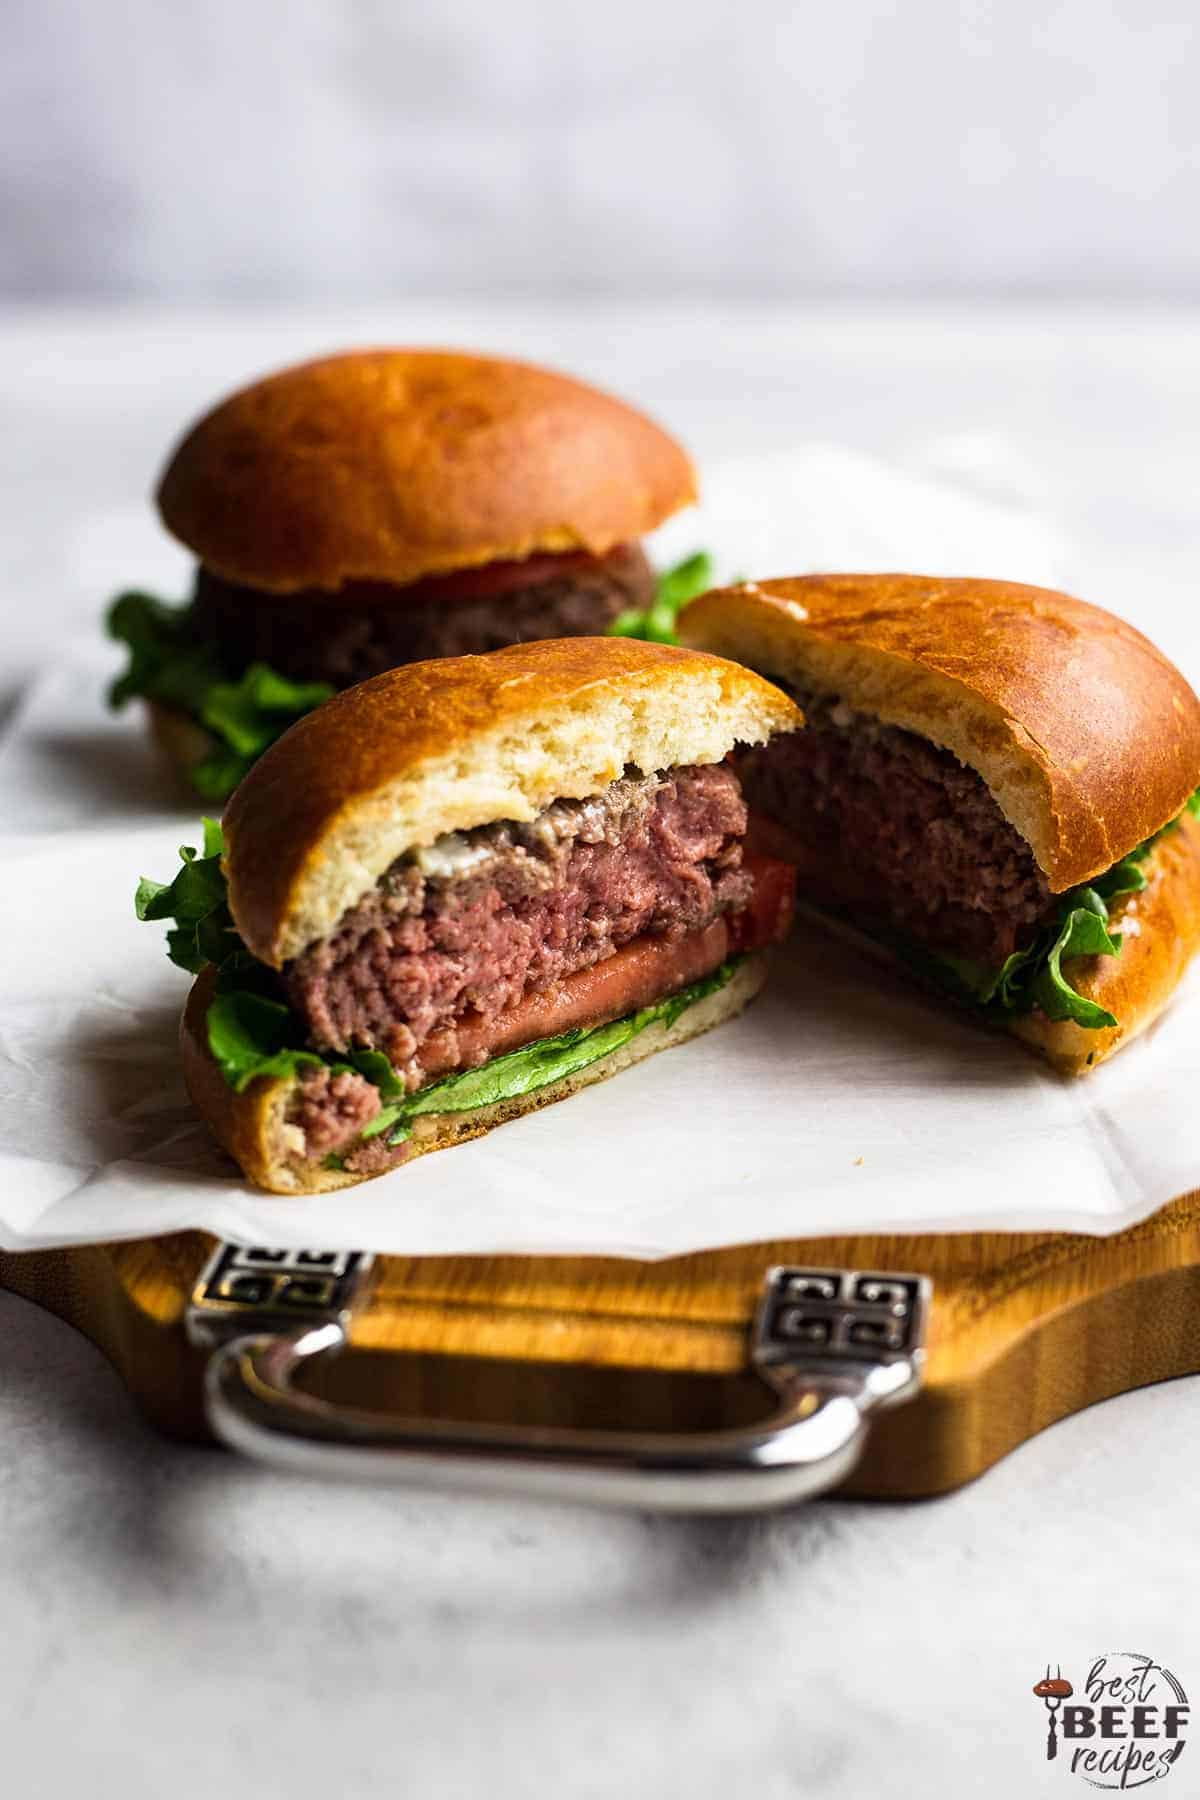 A garlic butter burger cut in half to show the medium-rare middle